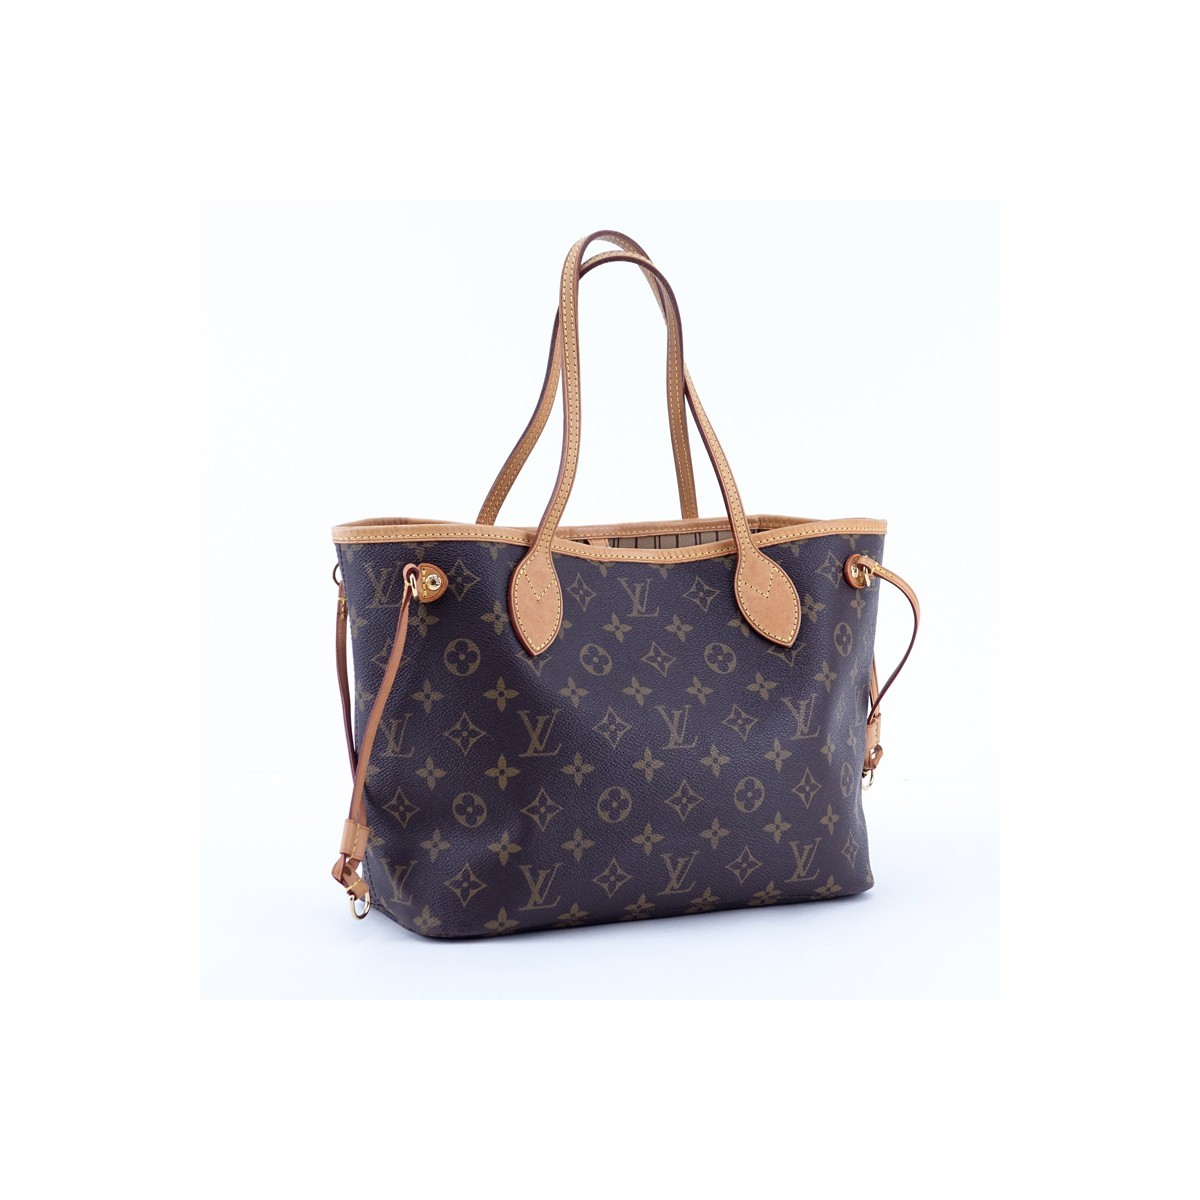 Louis Vuitton Brown Monogram Coated Canvas And Leather Neverfull PM Handbag. Golden brass hardware, signature canvas interior with zippered pocket, vachetta straps.